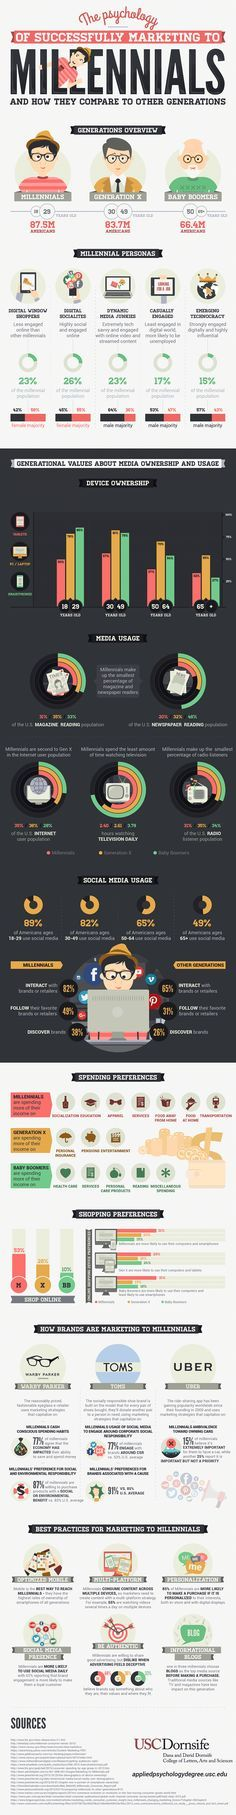 The Psychology of Successfully Marketing to Millennials - infographic